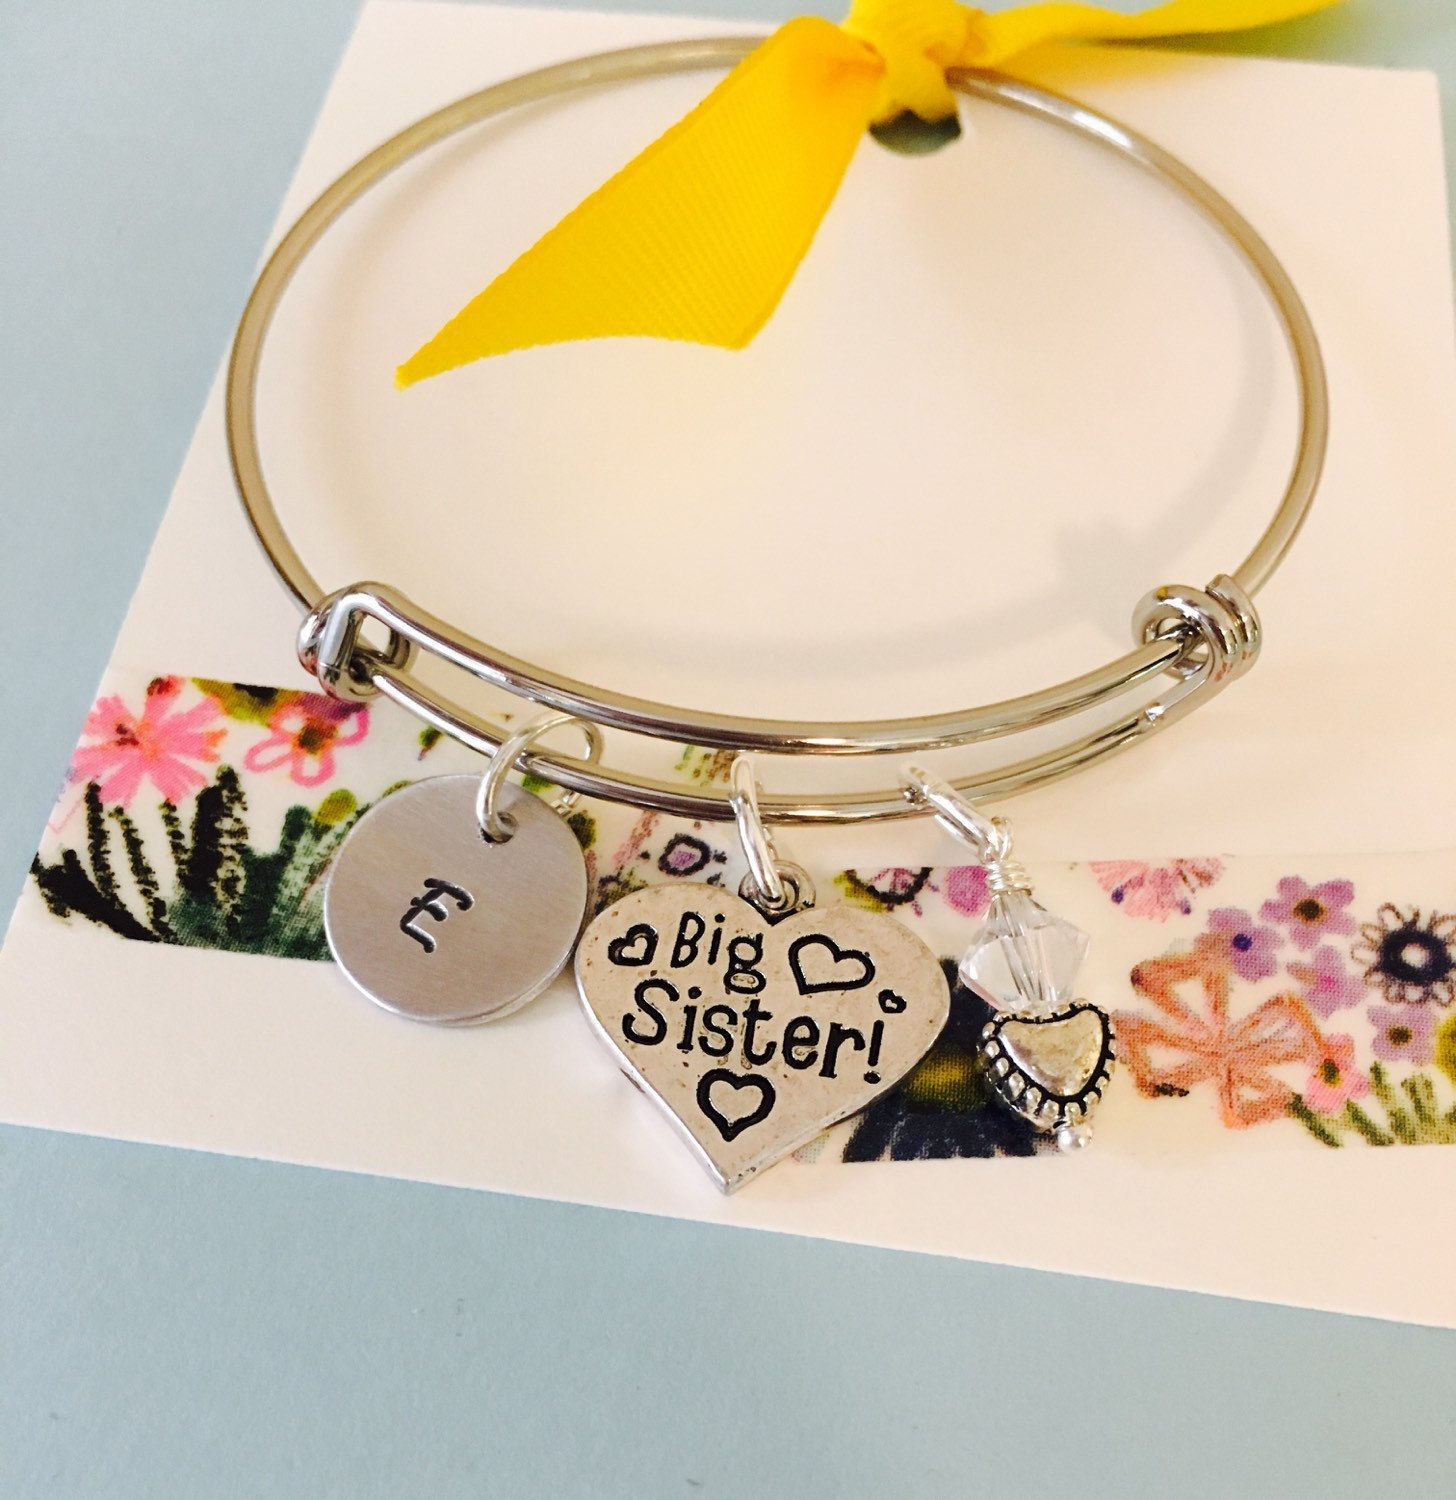 cherleading little teen pin bracelet cheerleader name girls personalized bangle adjustable bangles